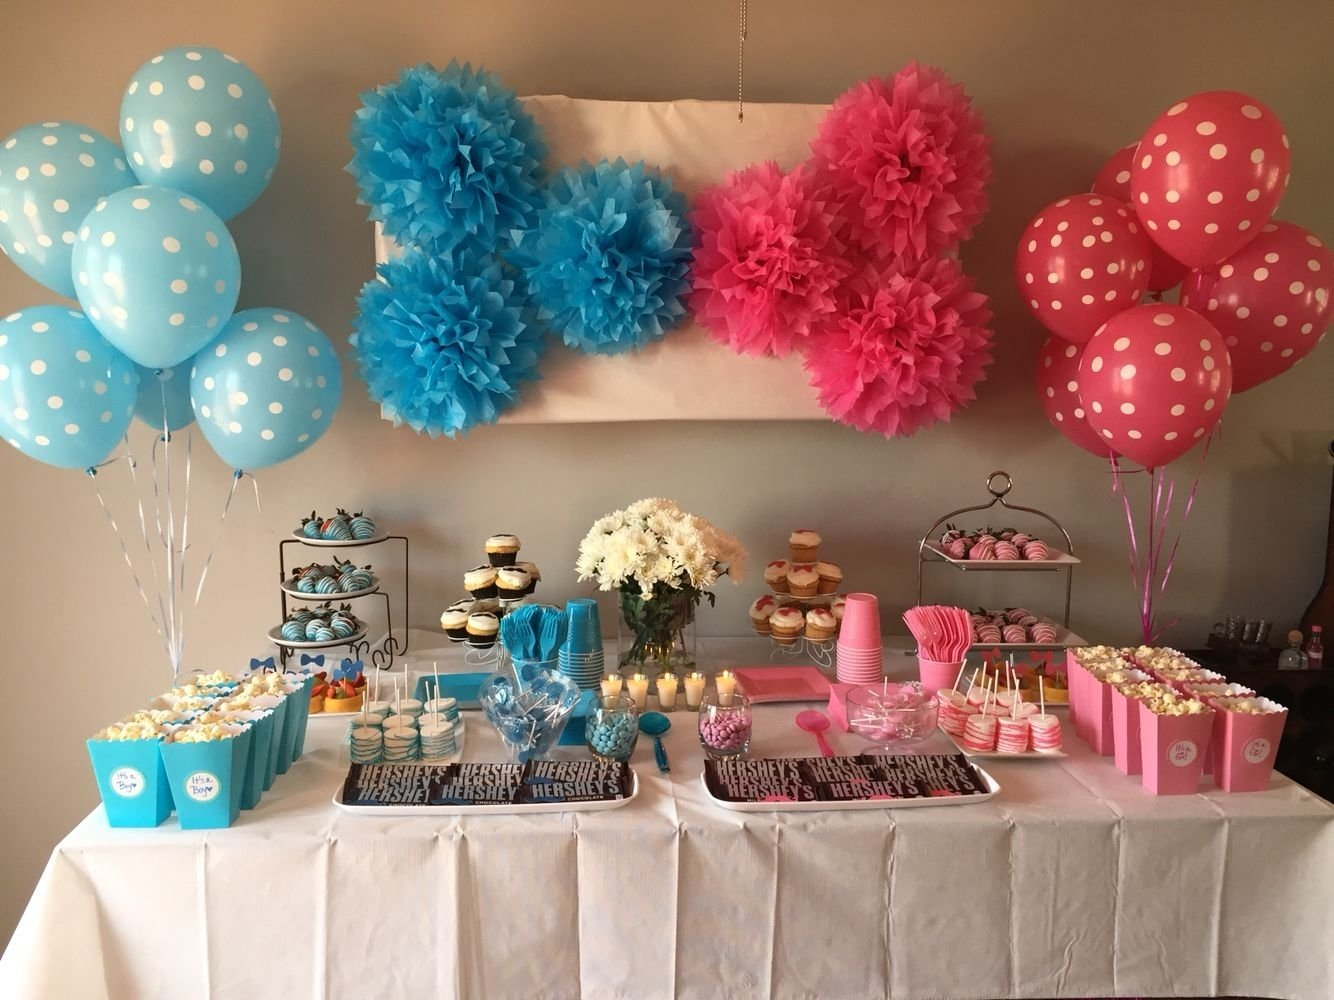 10 Best Boy Or Girl Reveal Ideas gender reveal boy or girl the set up party ideas cake 2021